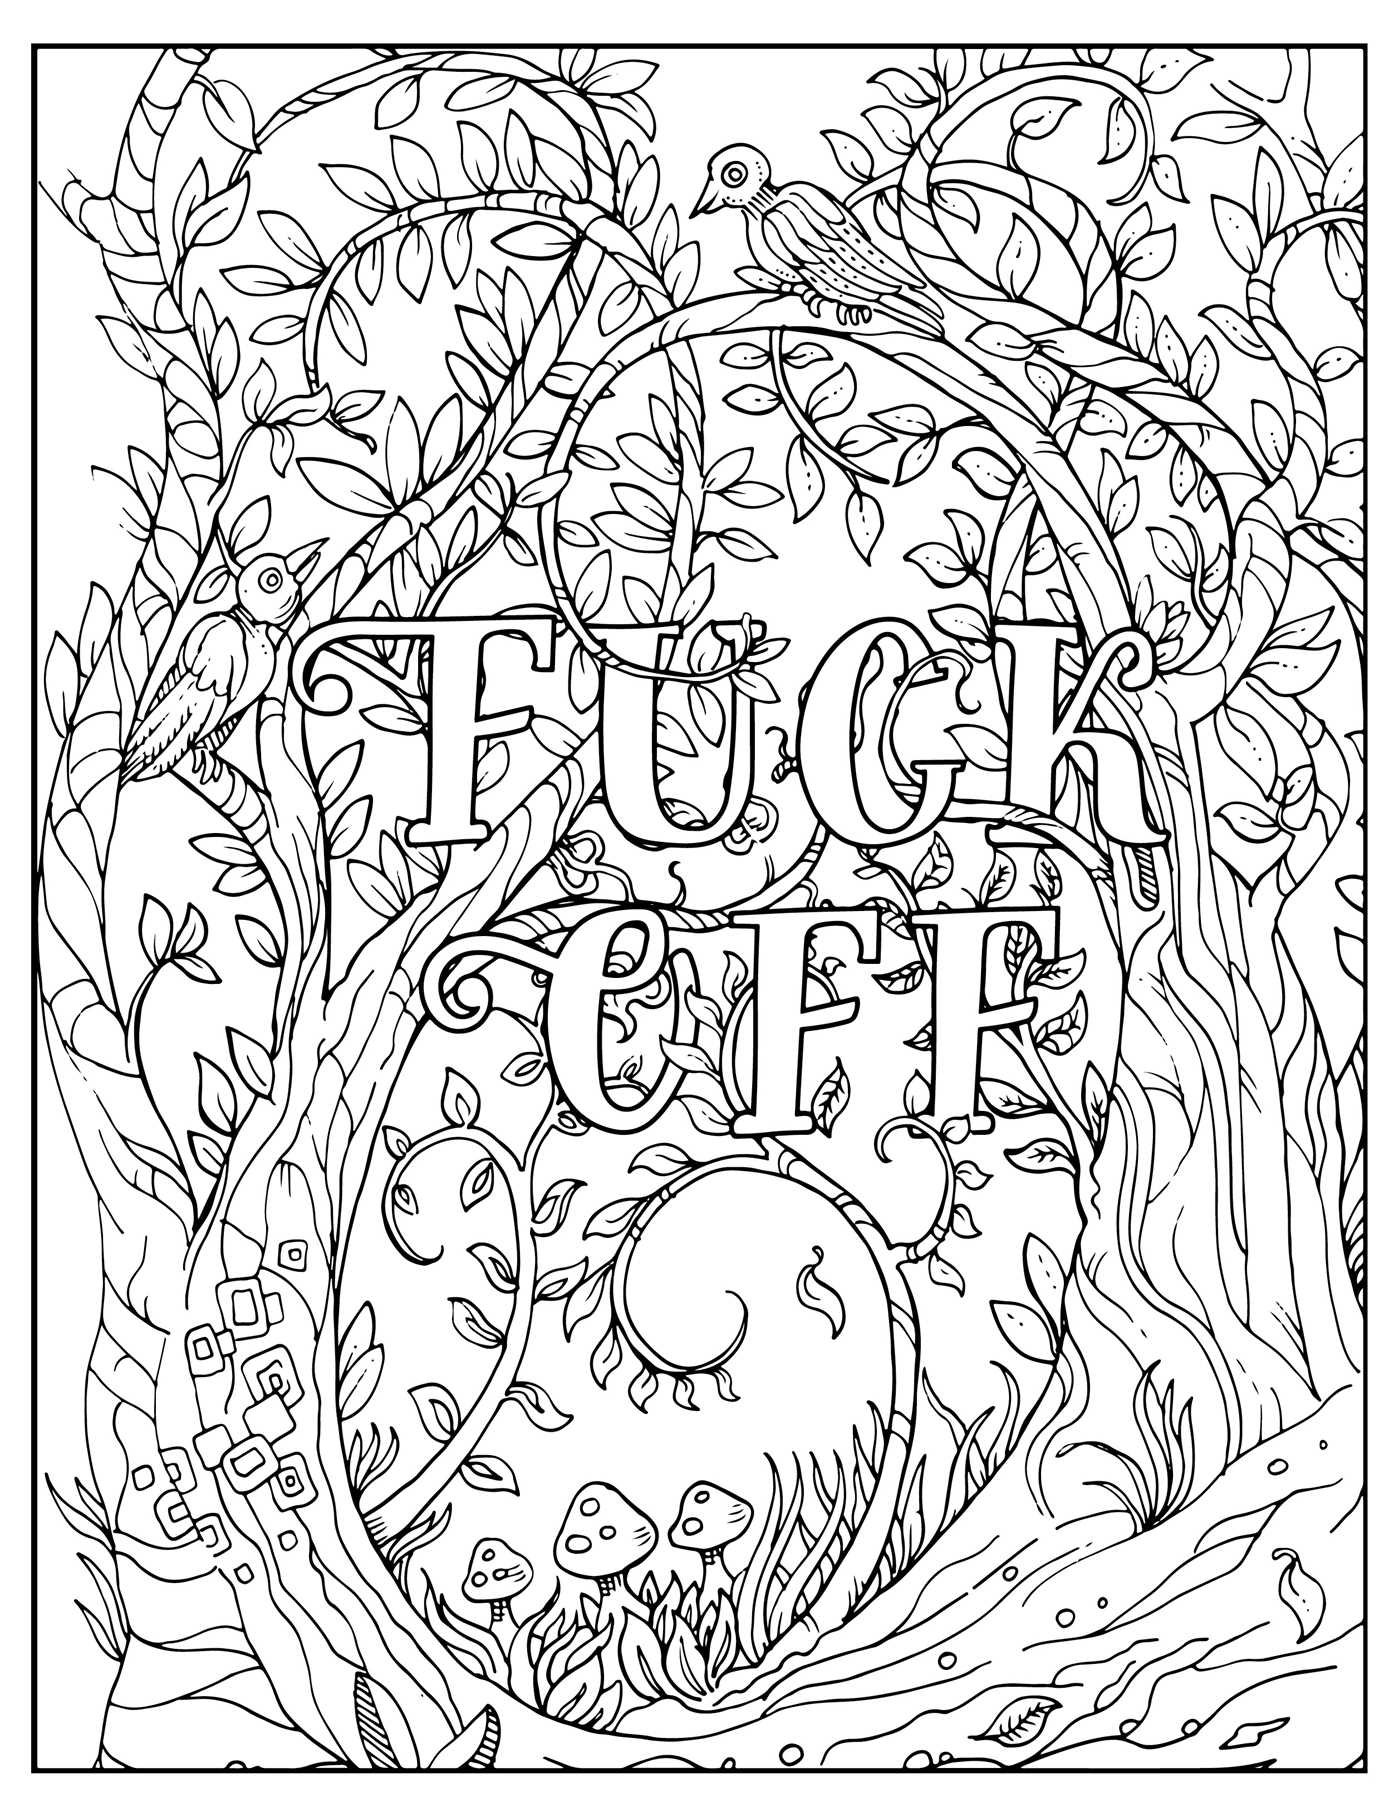 Zen coloring books for adults app - Fuck Off I M Coloring Unwind With 50 Obnoxiously Fun Swear Word Coloring Pages Dare You Stamp Company Dare You Stamp Co 9781604336610 Amazon Com